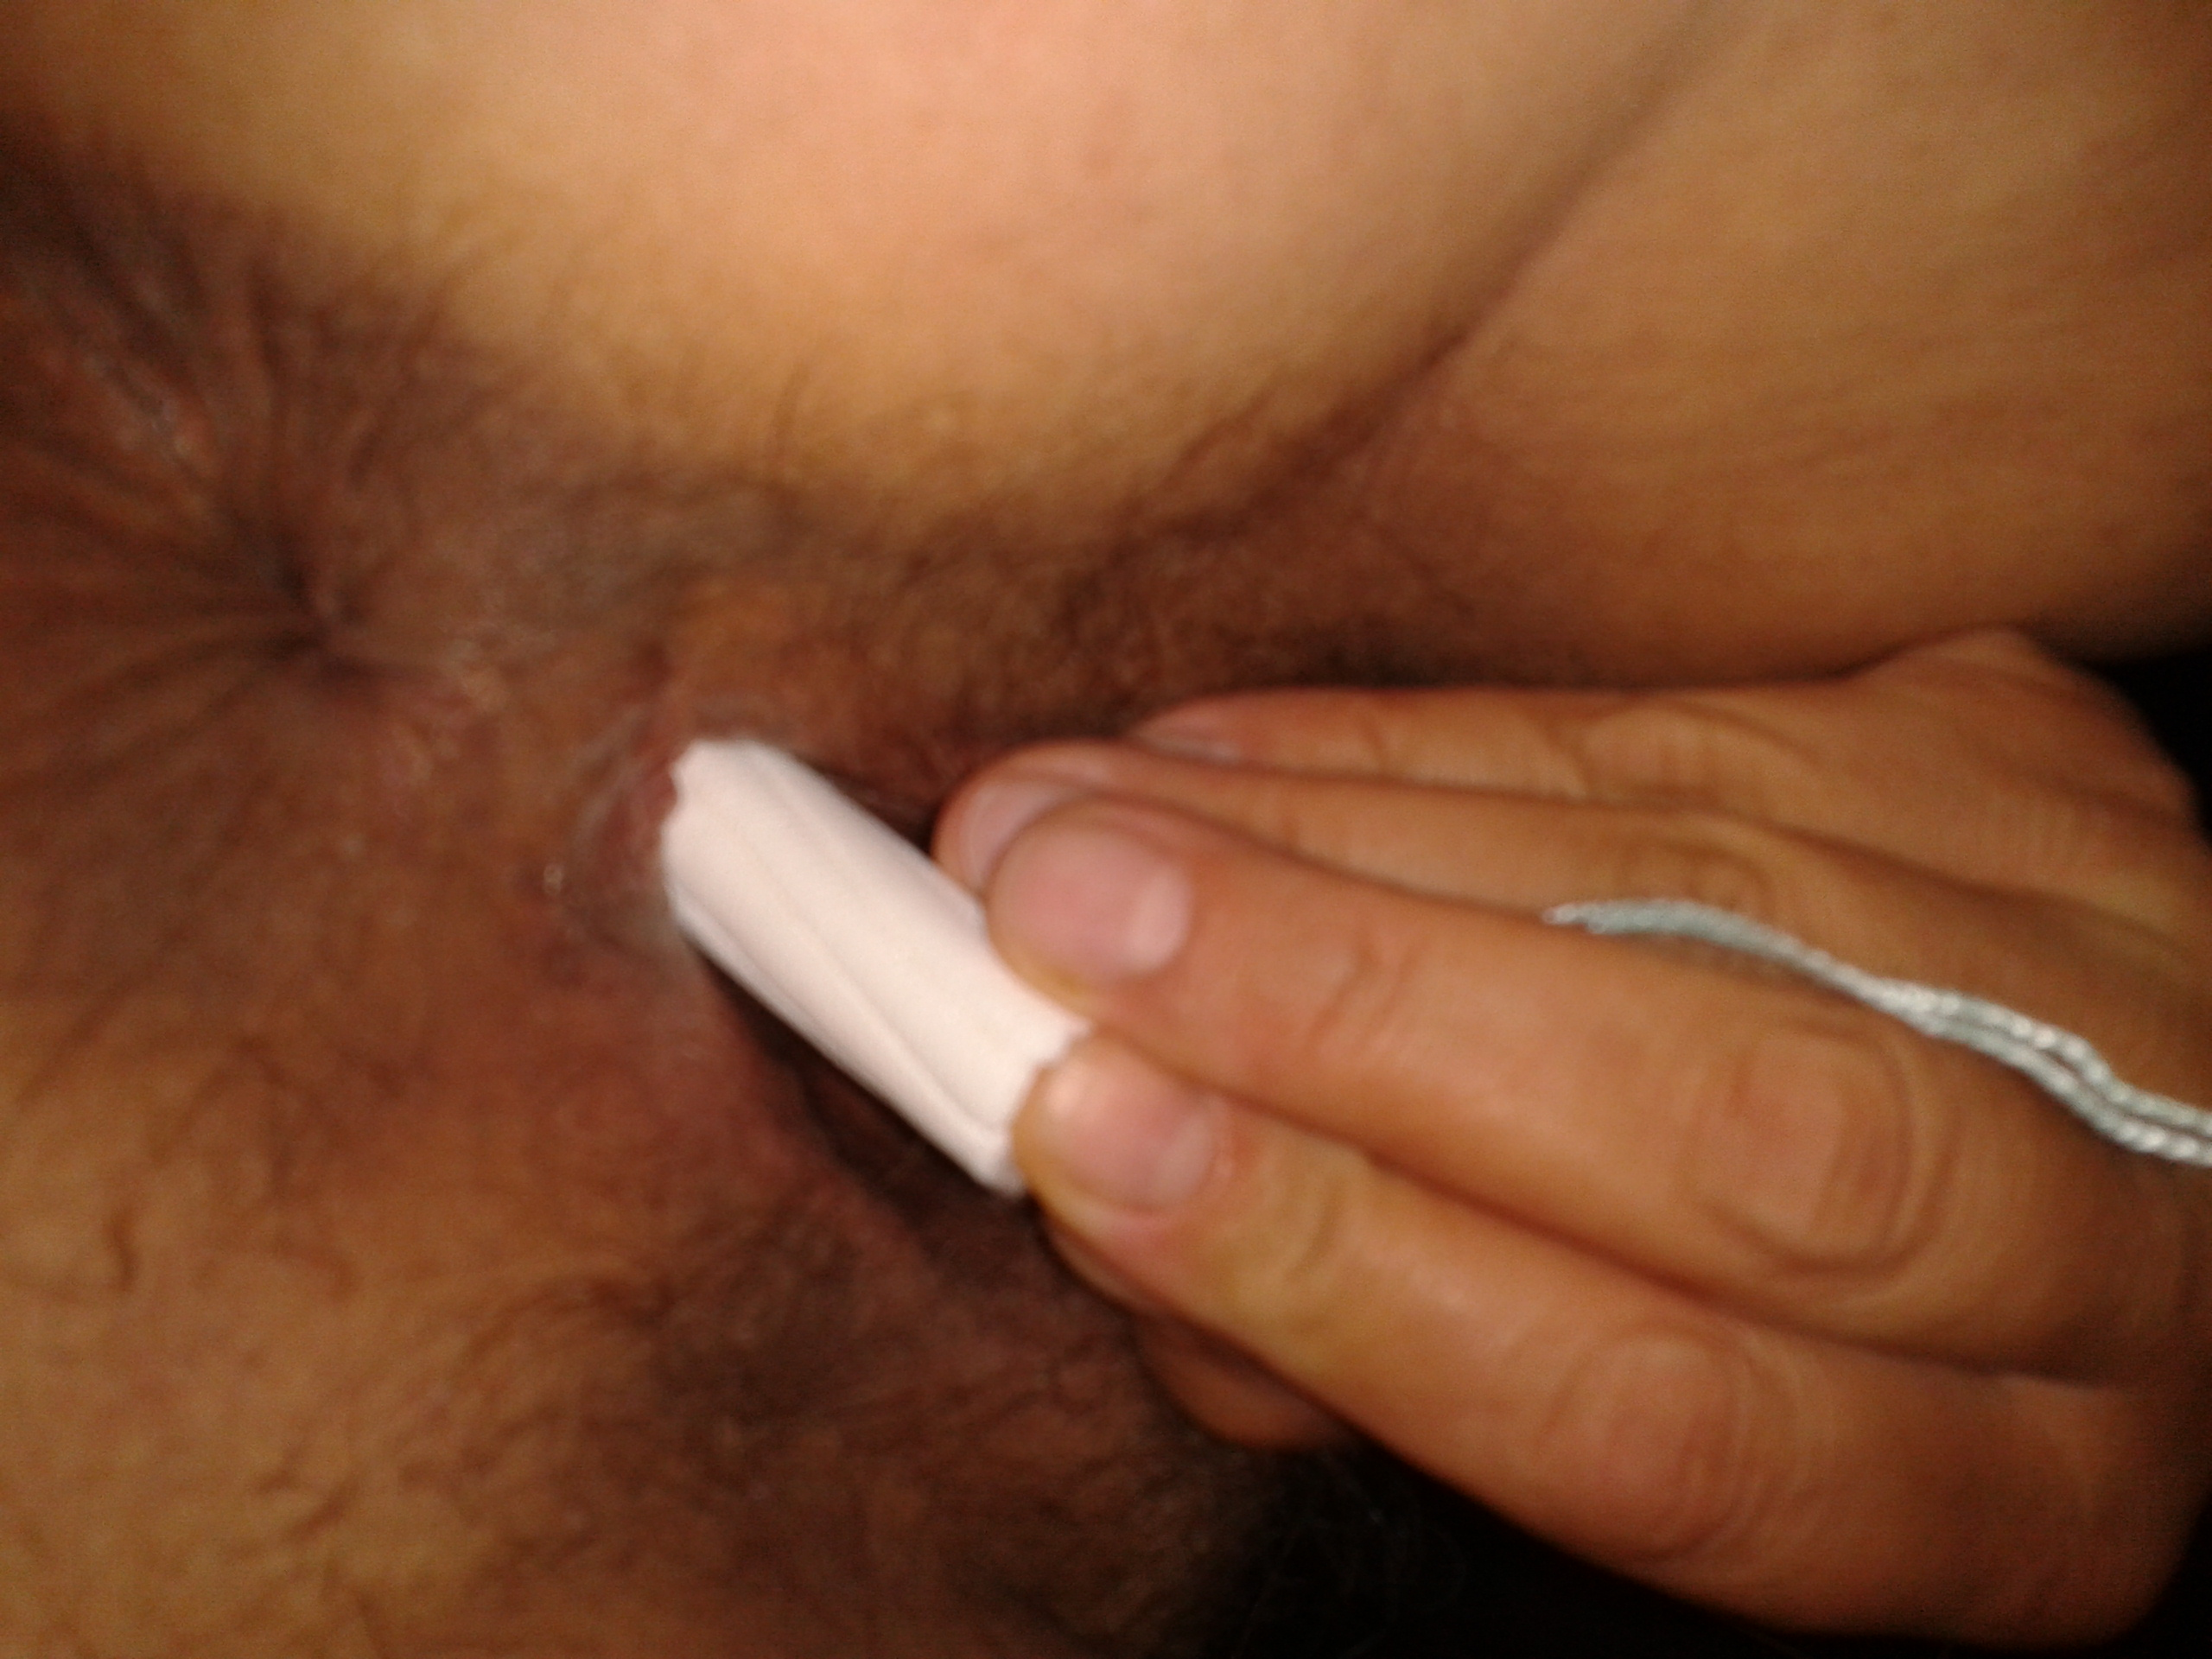 Lose my virginity by inserting a tampon — pic 5